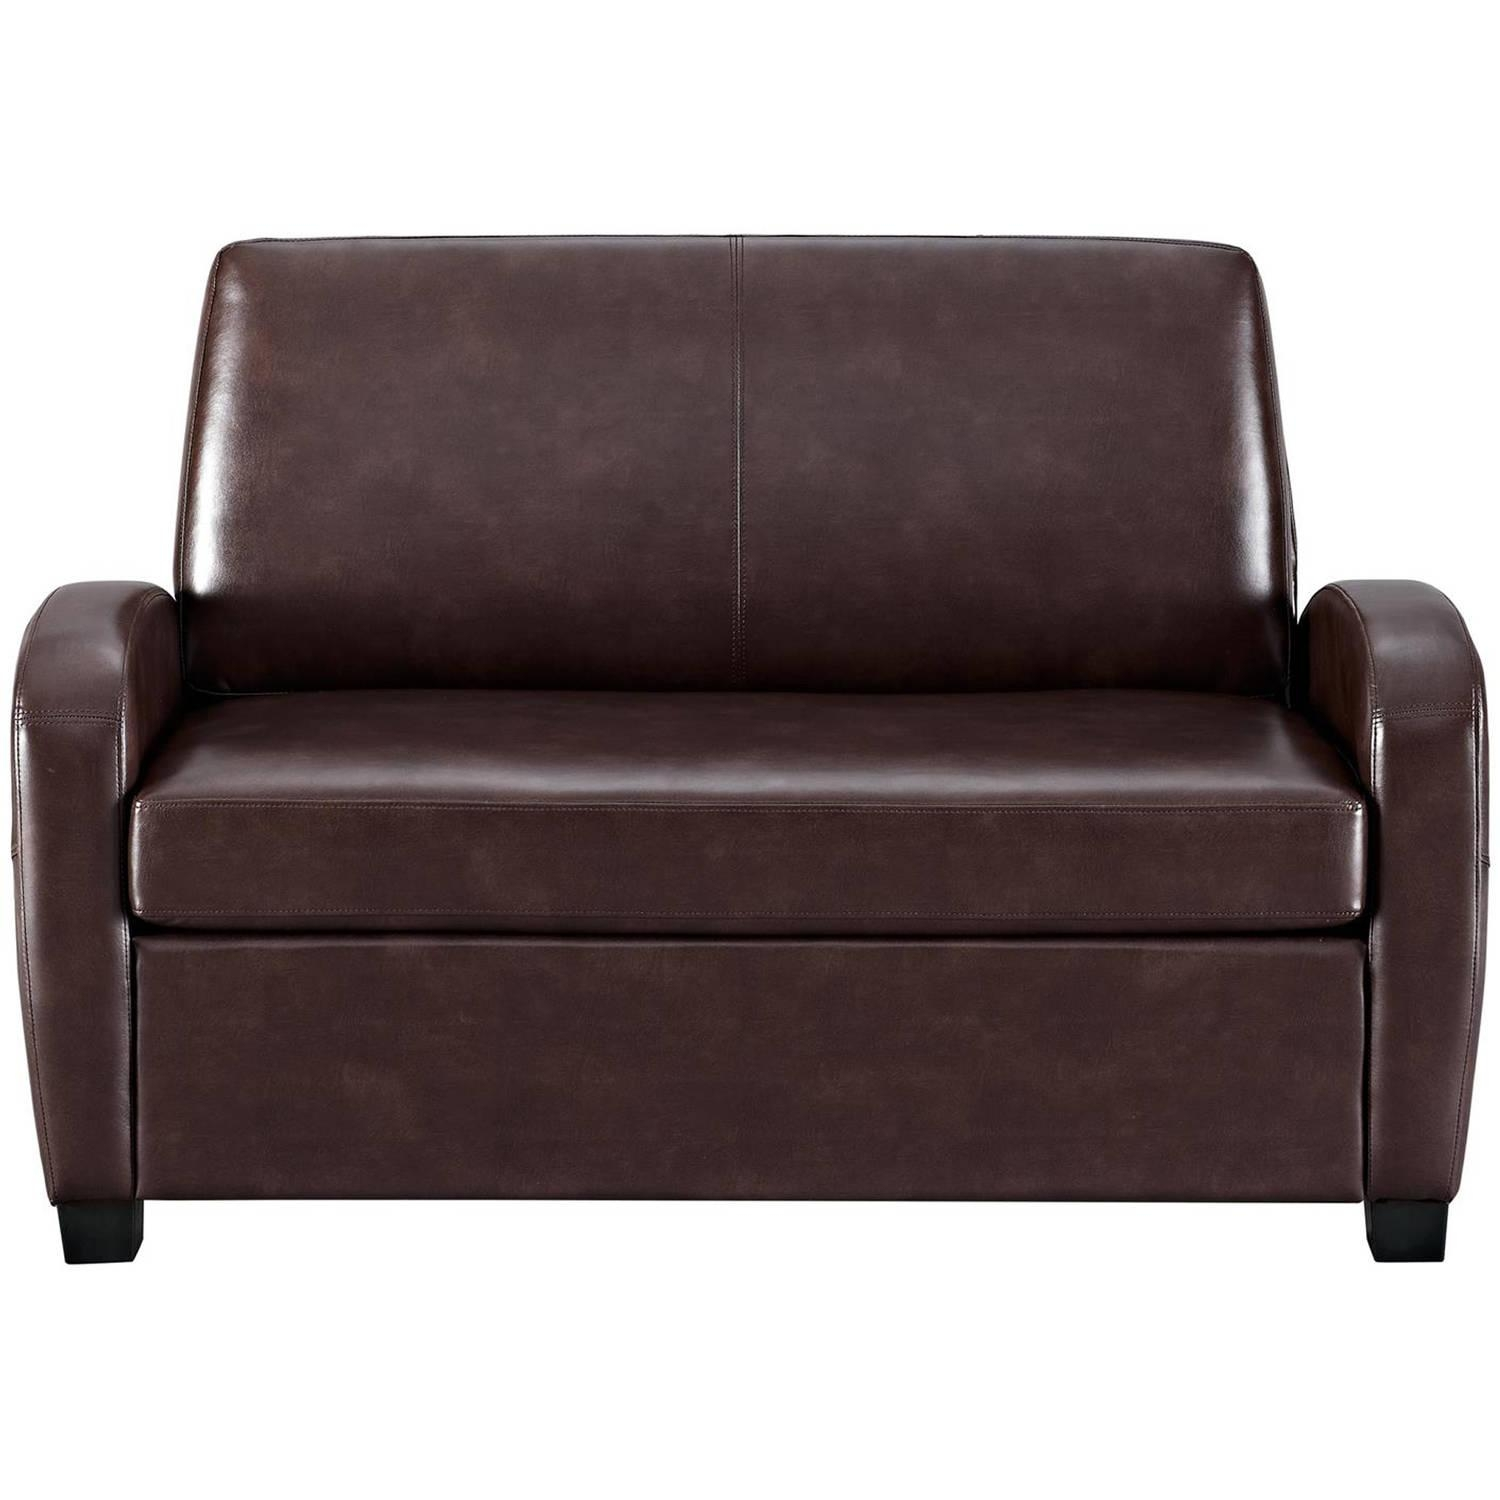 Faux Leather Sleeper Sofa | Design Your Life Throughout Faux Leather Sleeper Sofas (View 8 of 20)